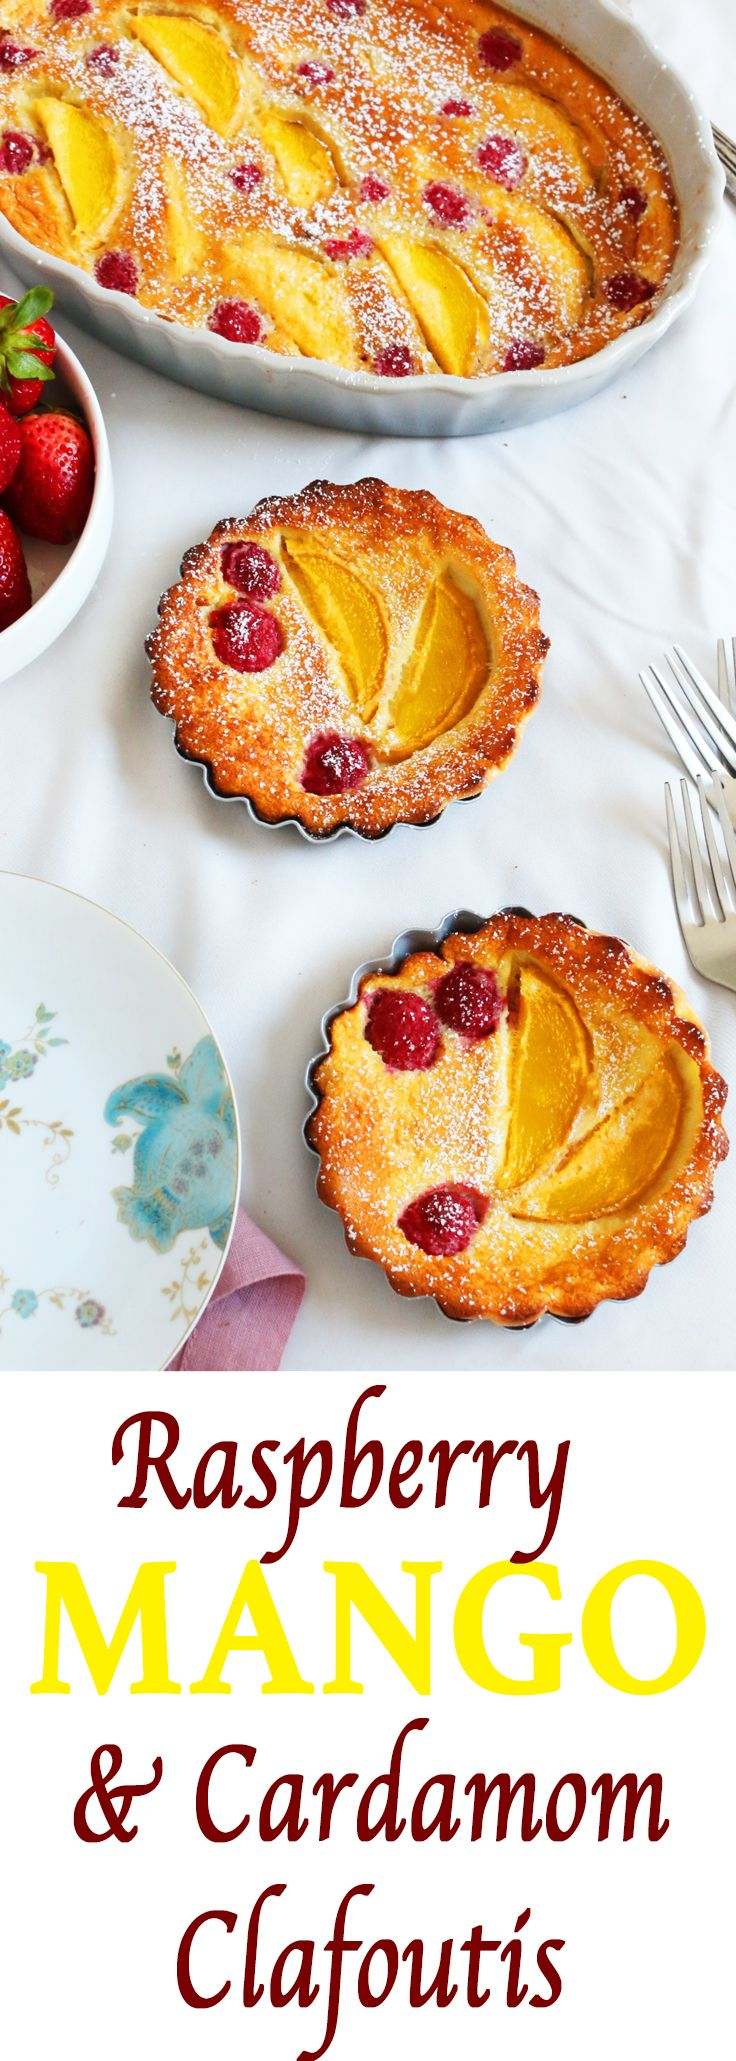 Mango clafoutis | Raspberry clafoutis | Mothers day brunch| Easy mothers day recipe | easy recipes for kids to make | breakfast in bed recipe | mango cardamom |